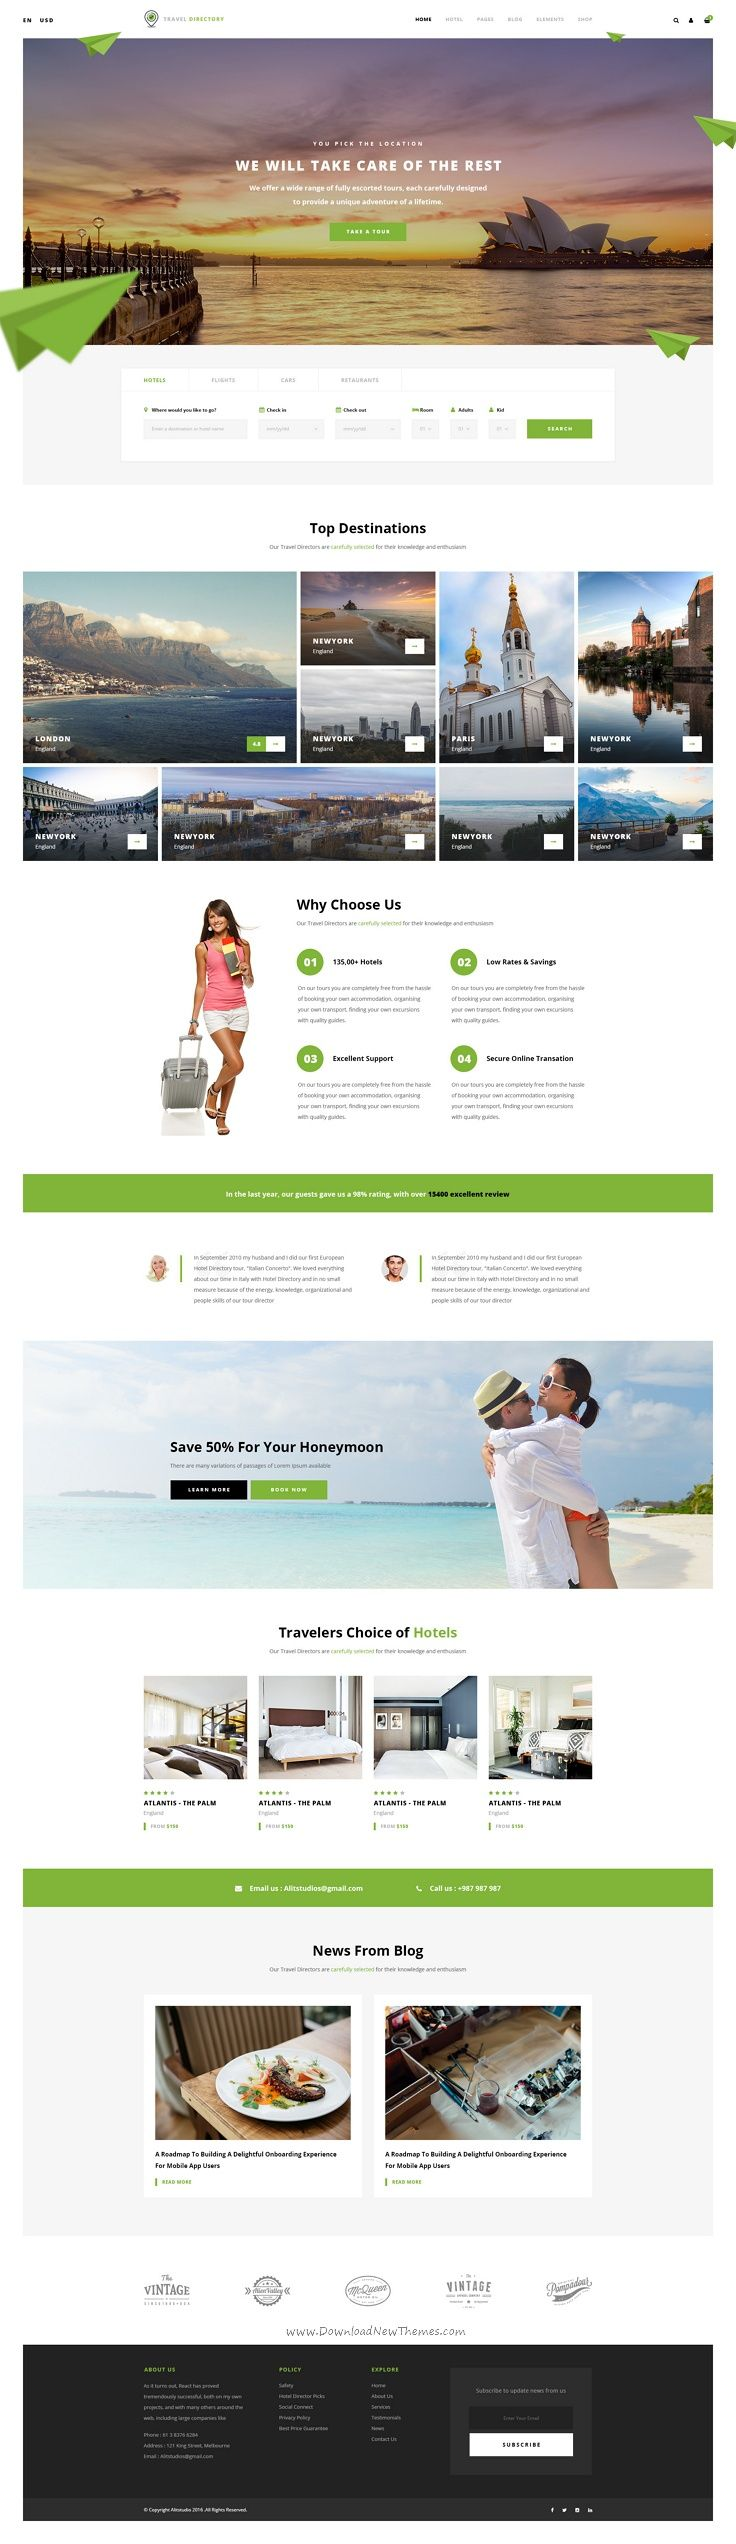 Hotel directory is a modern and perfect psd template for hotels tours and